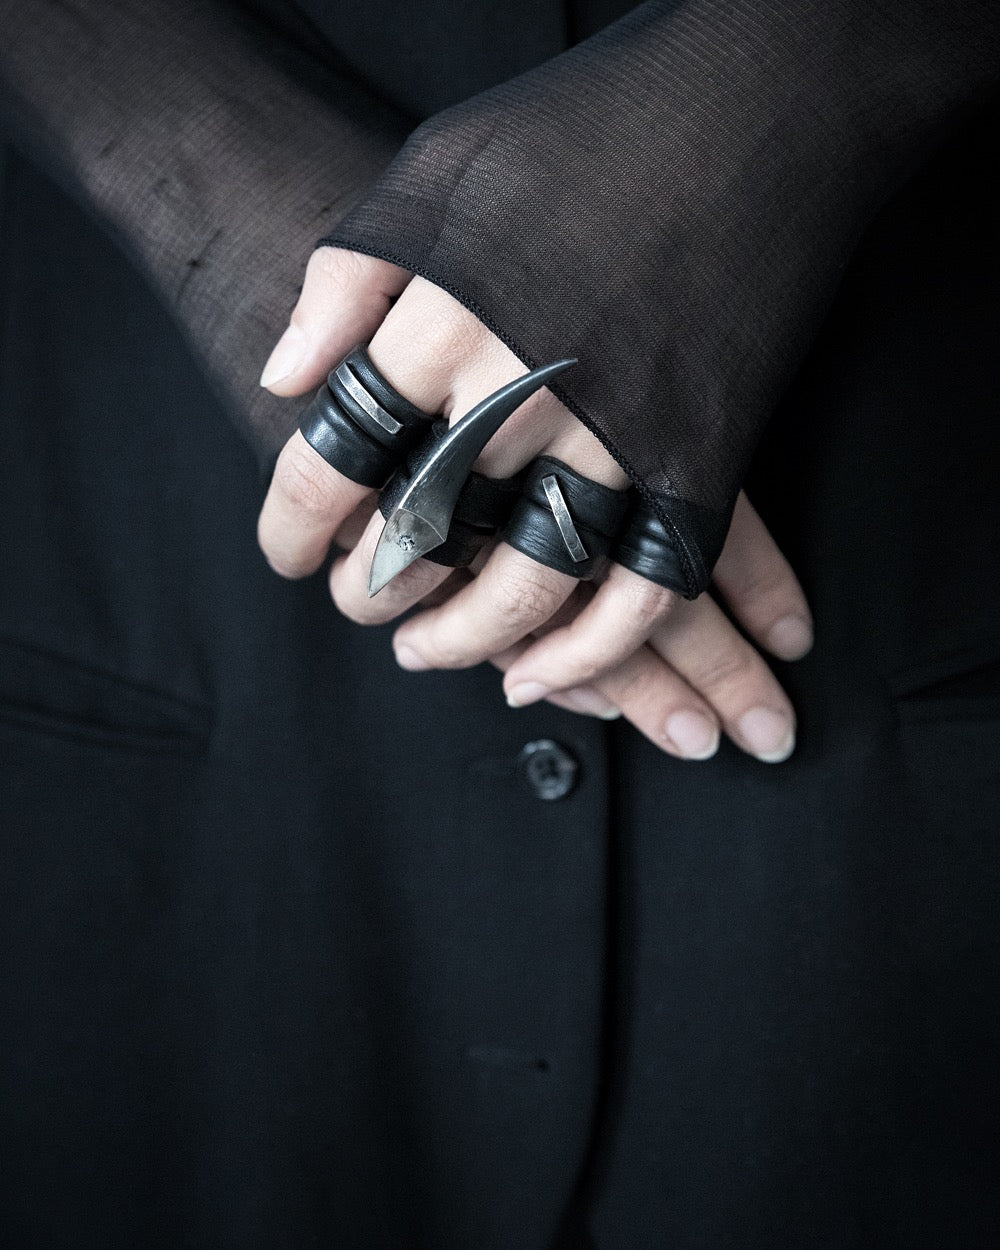 IRON STROKE RINGS